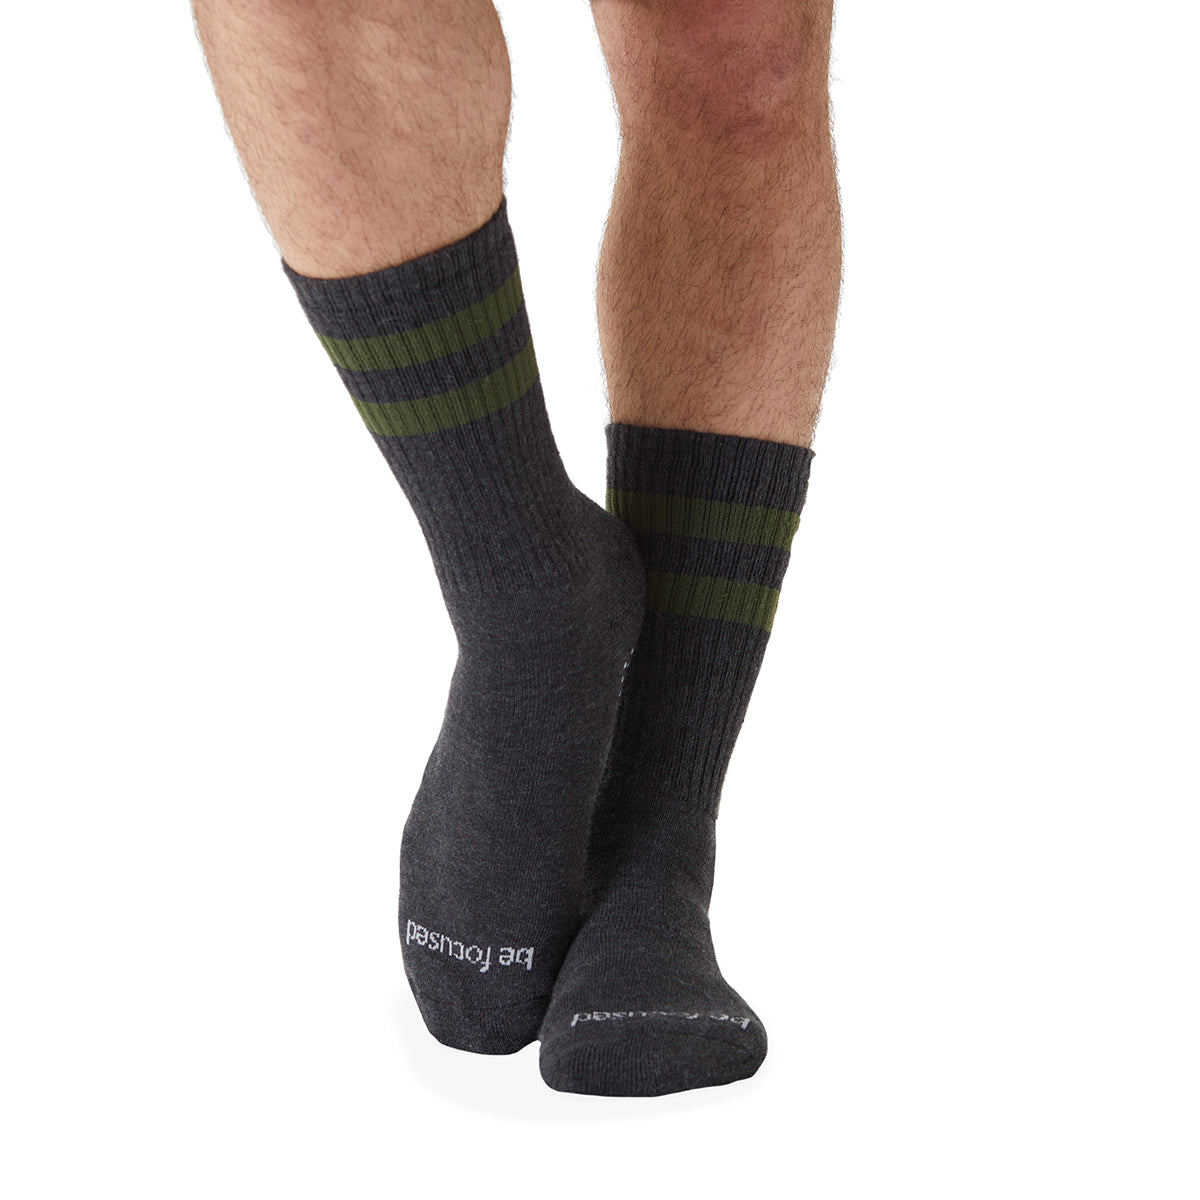 MENS CREW Be Focused Grip Socks (Charcoal/Hunter)